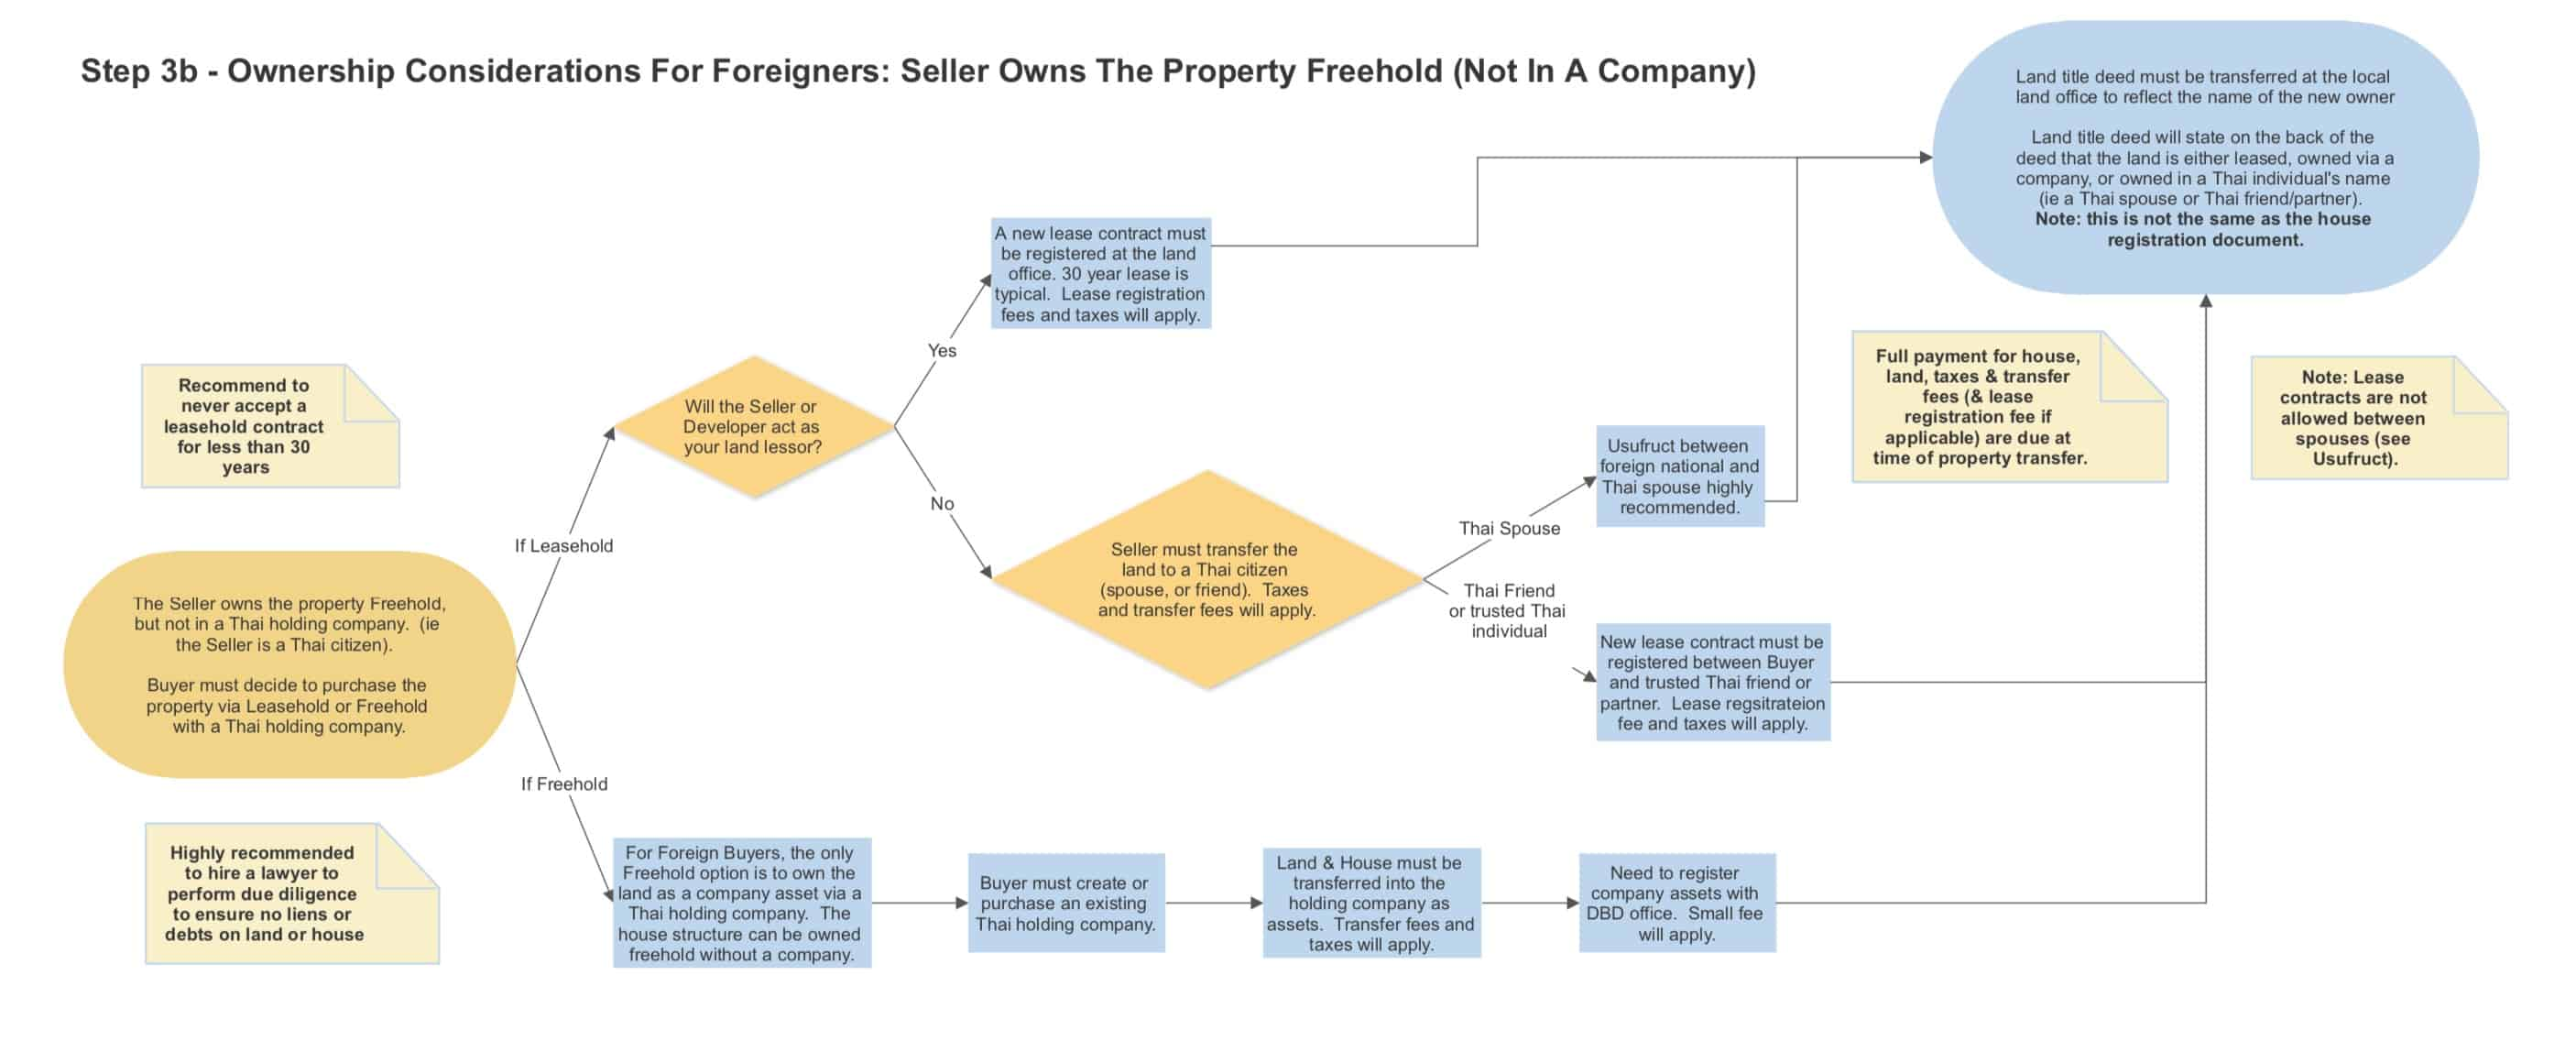 How To Buy Property In Thailand Step By Step Guide | Awesome! Property Transfer Flow Charts | Steps 1 -3 1